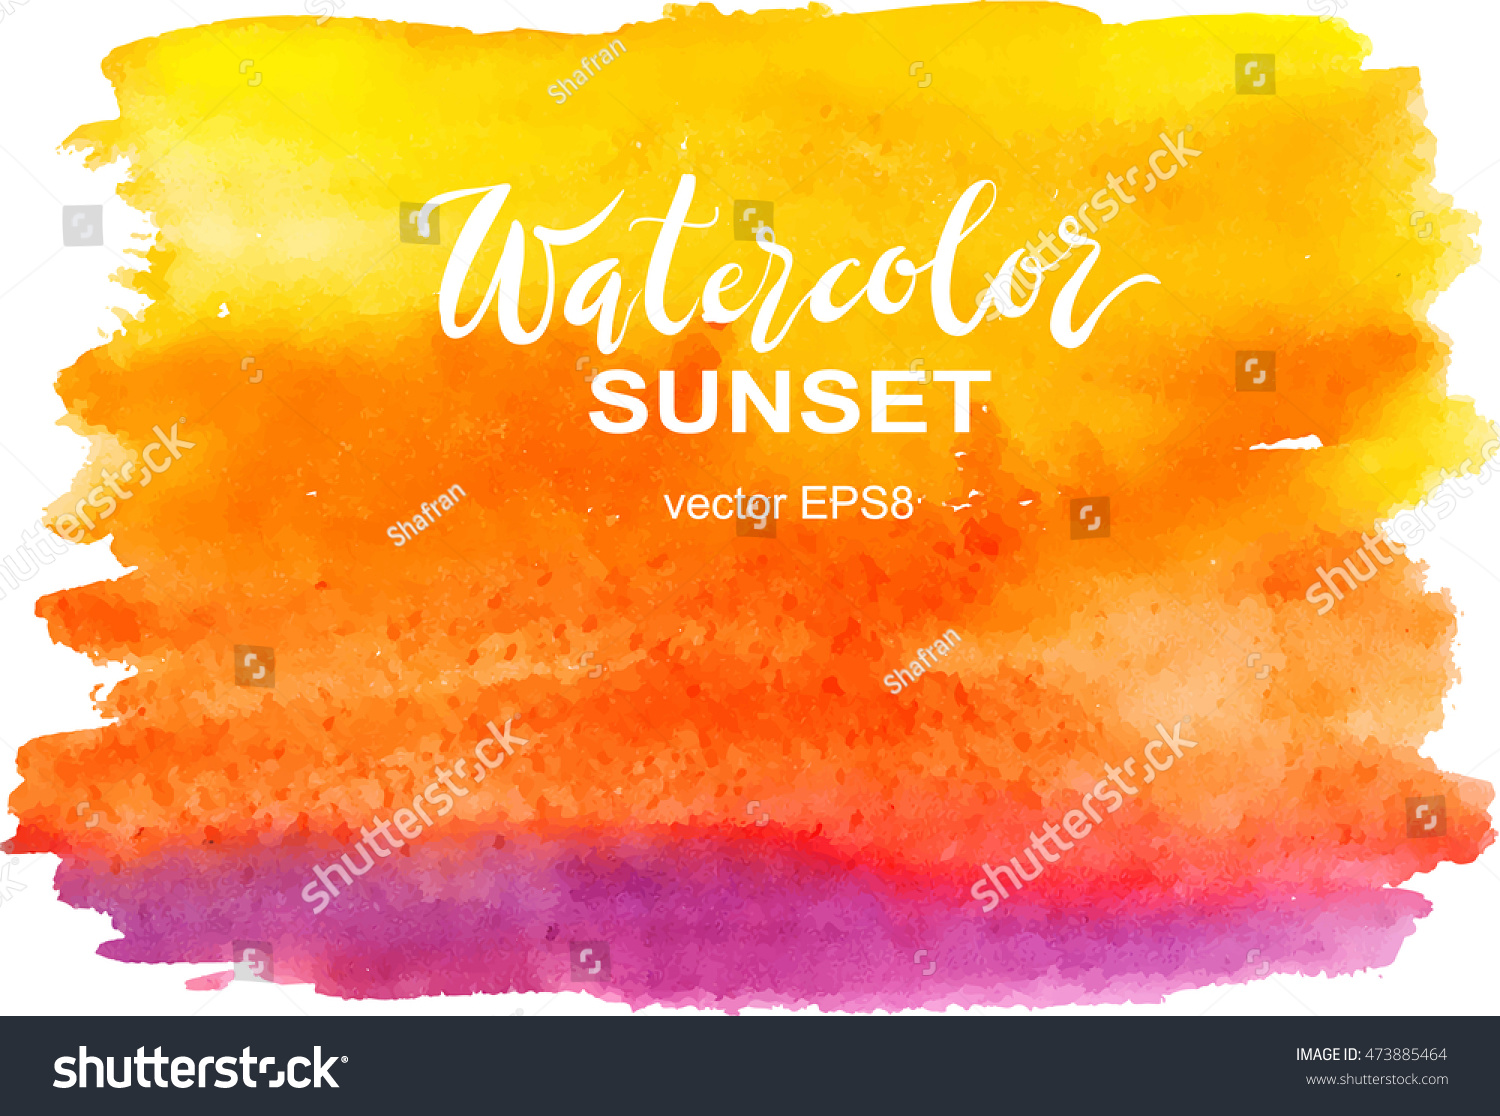 Hand painted mermaid watercolor vector silhouette stock vector - Abstract Watercolor Yellow Orange Pink Brushstroke Sunset Sky Vector Illustration Hand Painted